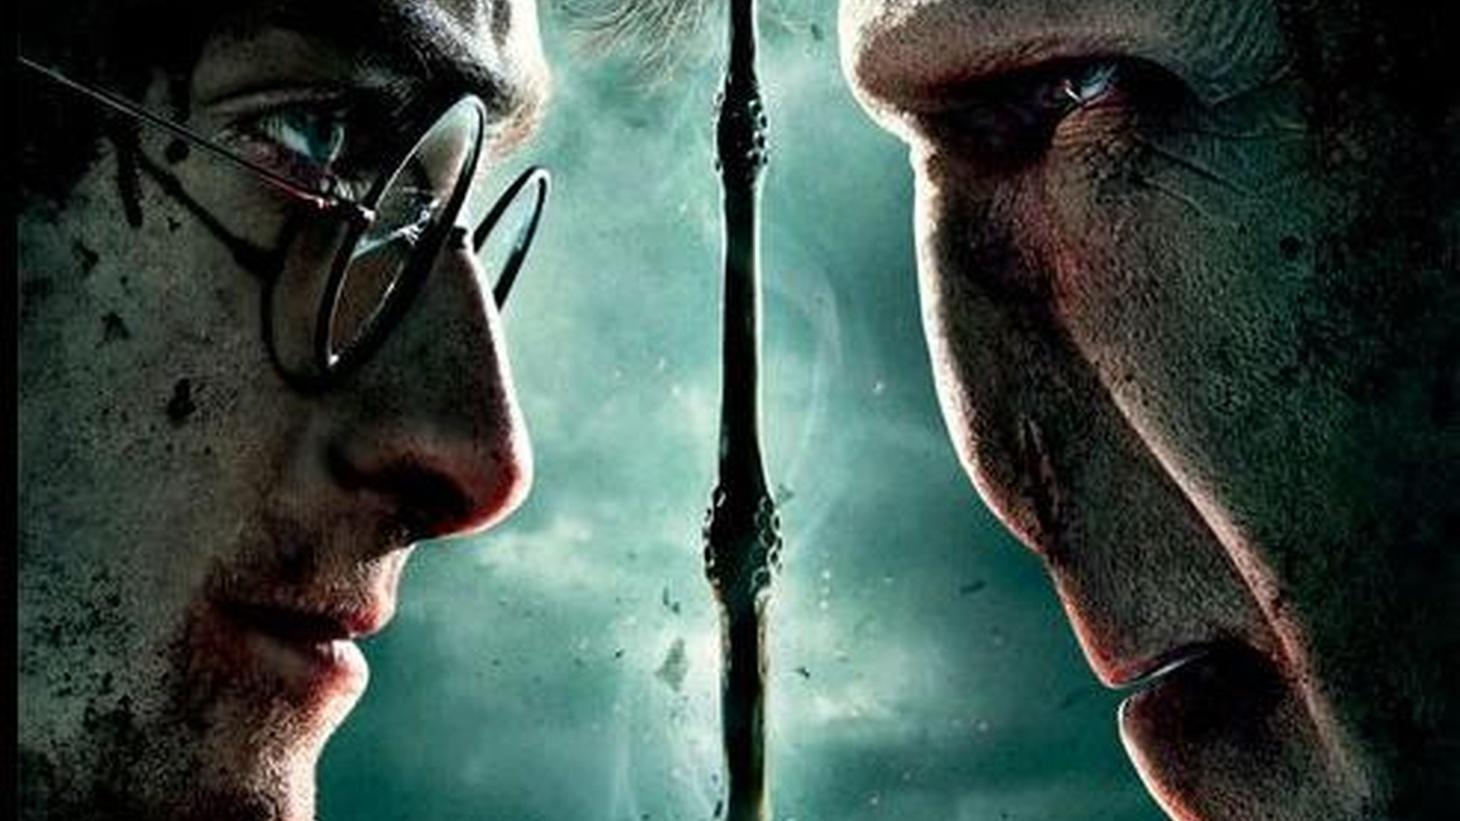 So many good films come to bad ends, but not the tales of Harry Potter...